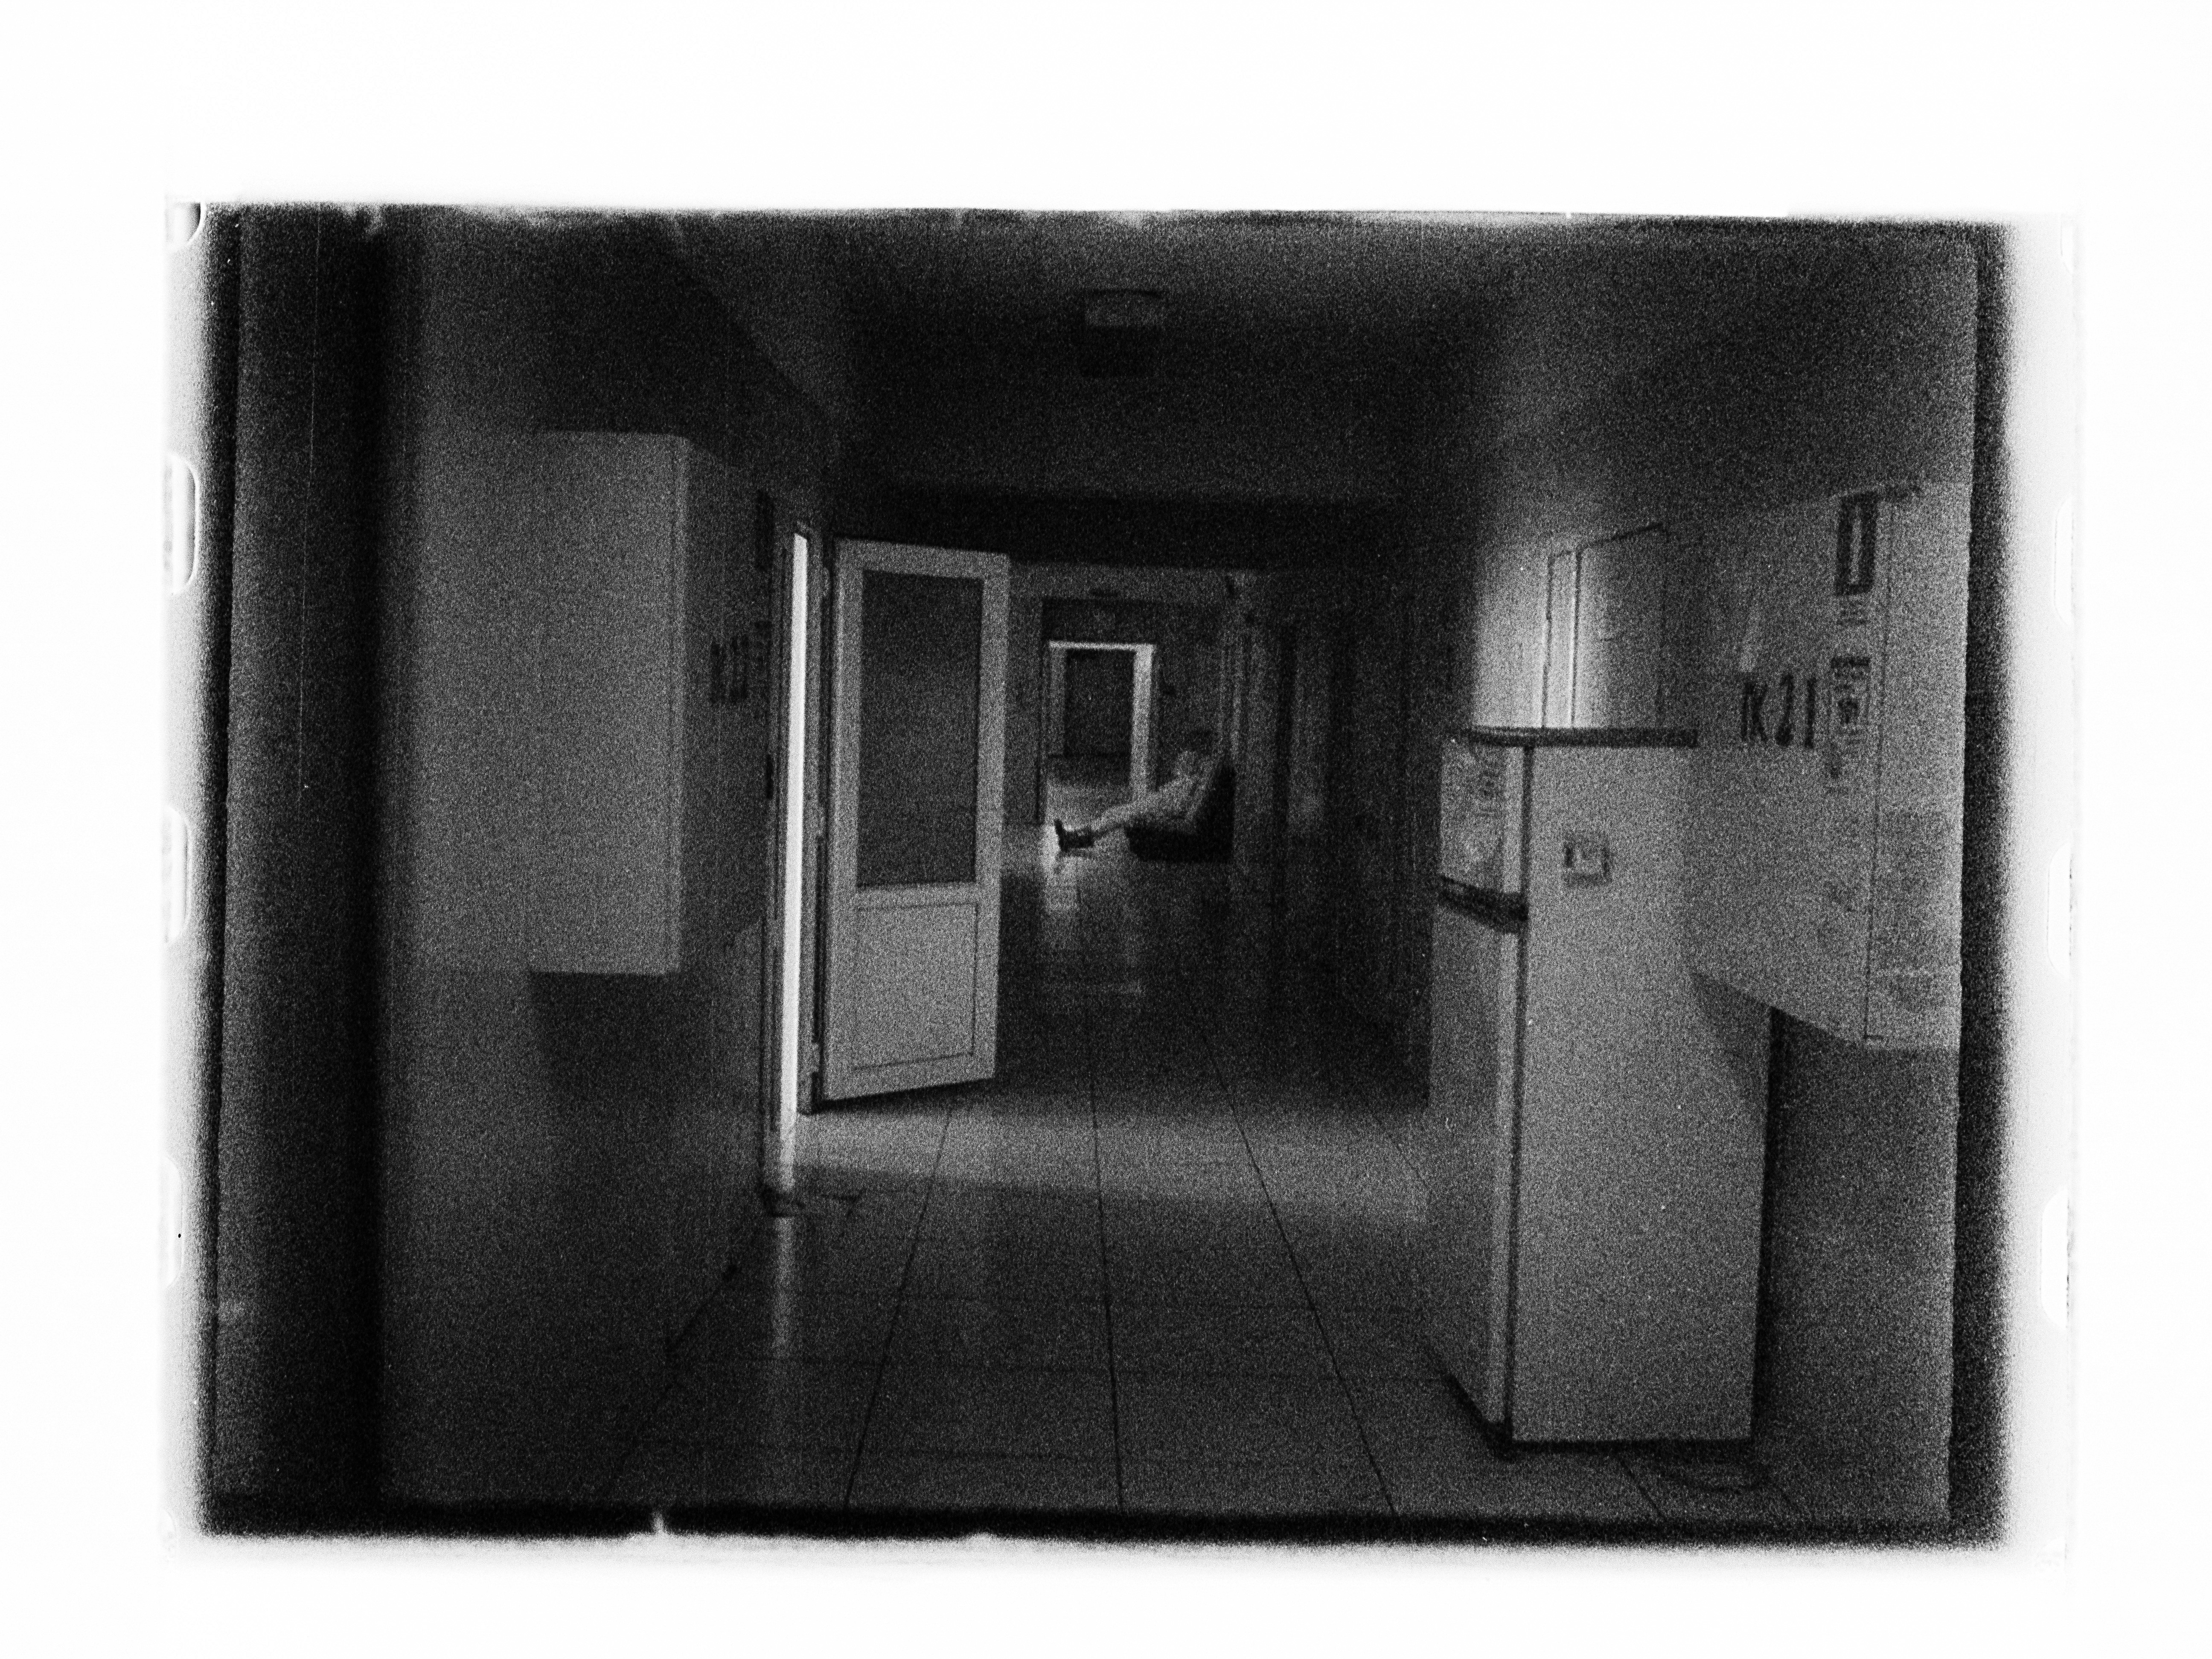 Hospital corridor at night (Pic: Andrey Khludeyev)